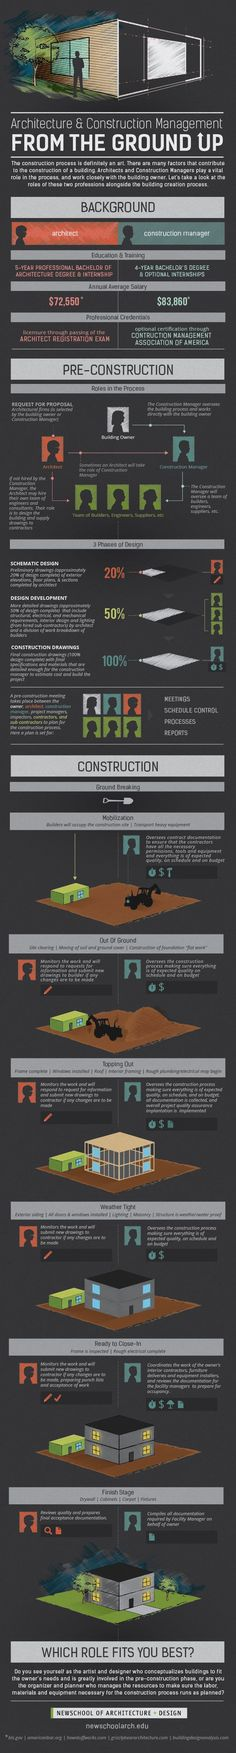 Interested in architecture and construction? Check out our infographic which looks at the differences between construction management and architecture roles! Construction Business, Construction Process, Construction Manager, Construction Design, Architecture Student, Architecture Design, Business Architecture, Container Architecture, Landscape Architecture